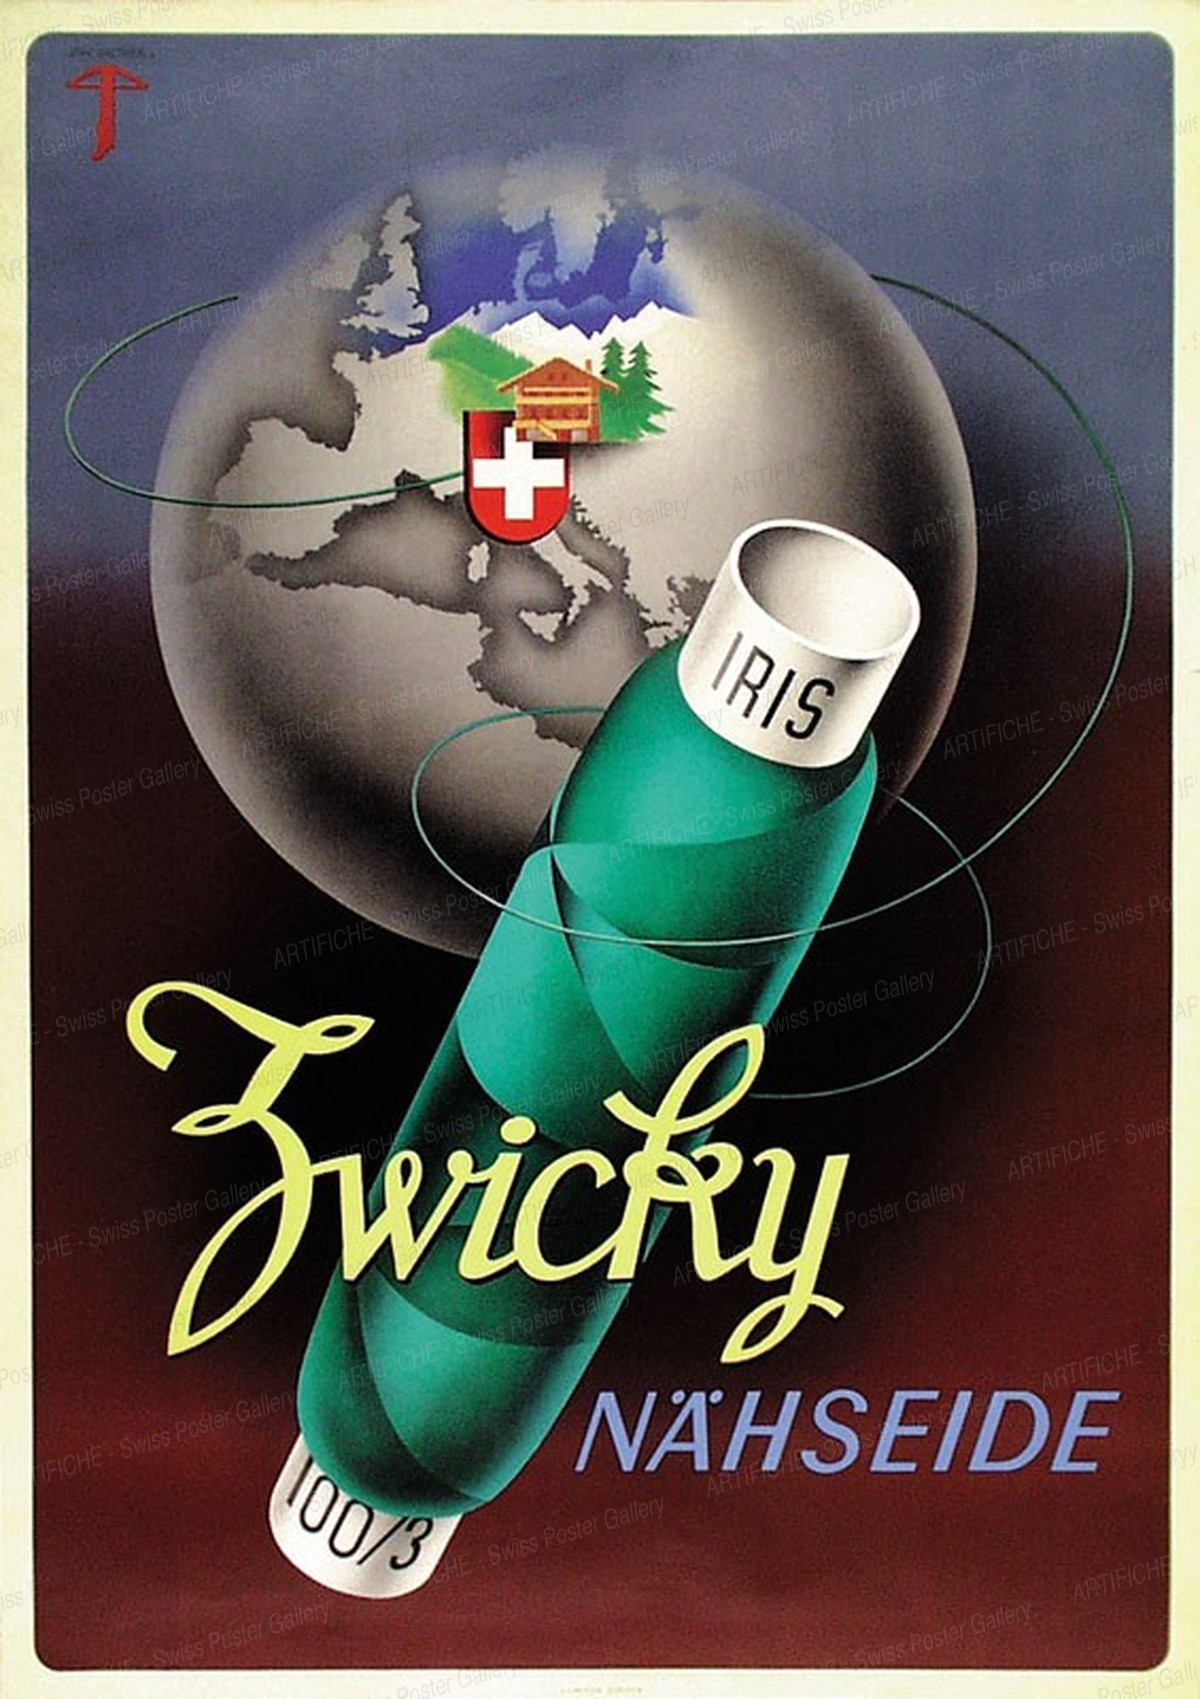 ZWICKY – Soies à coudre, Jean Walther